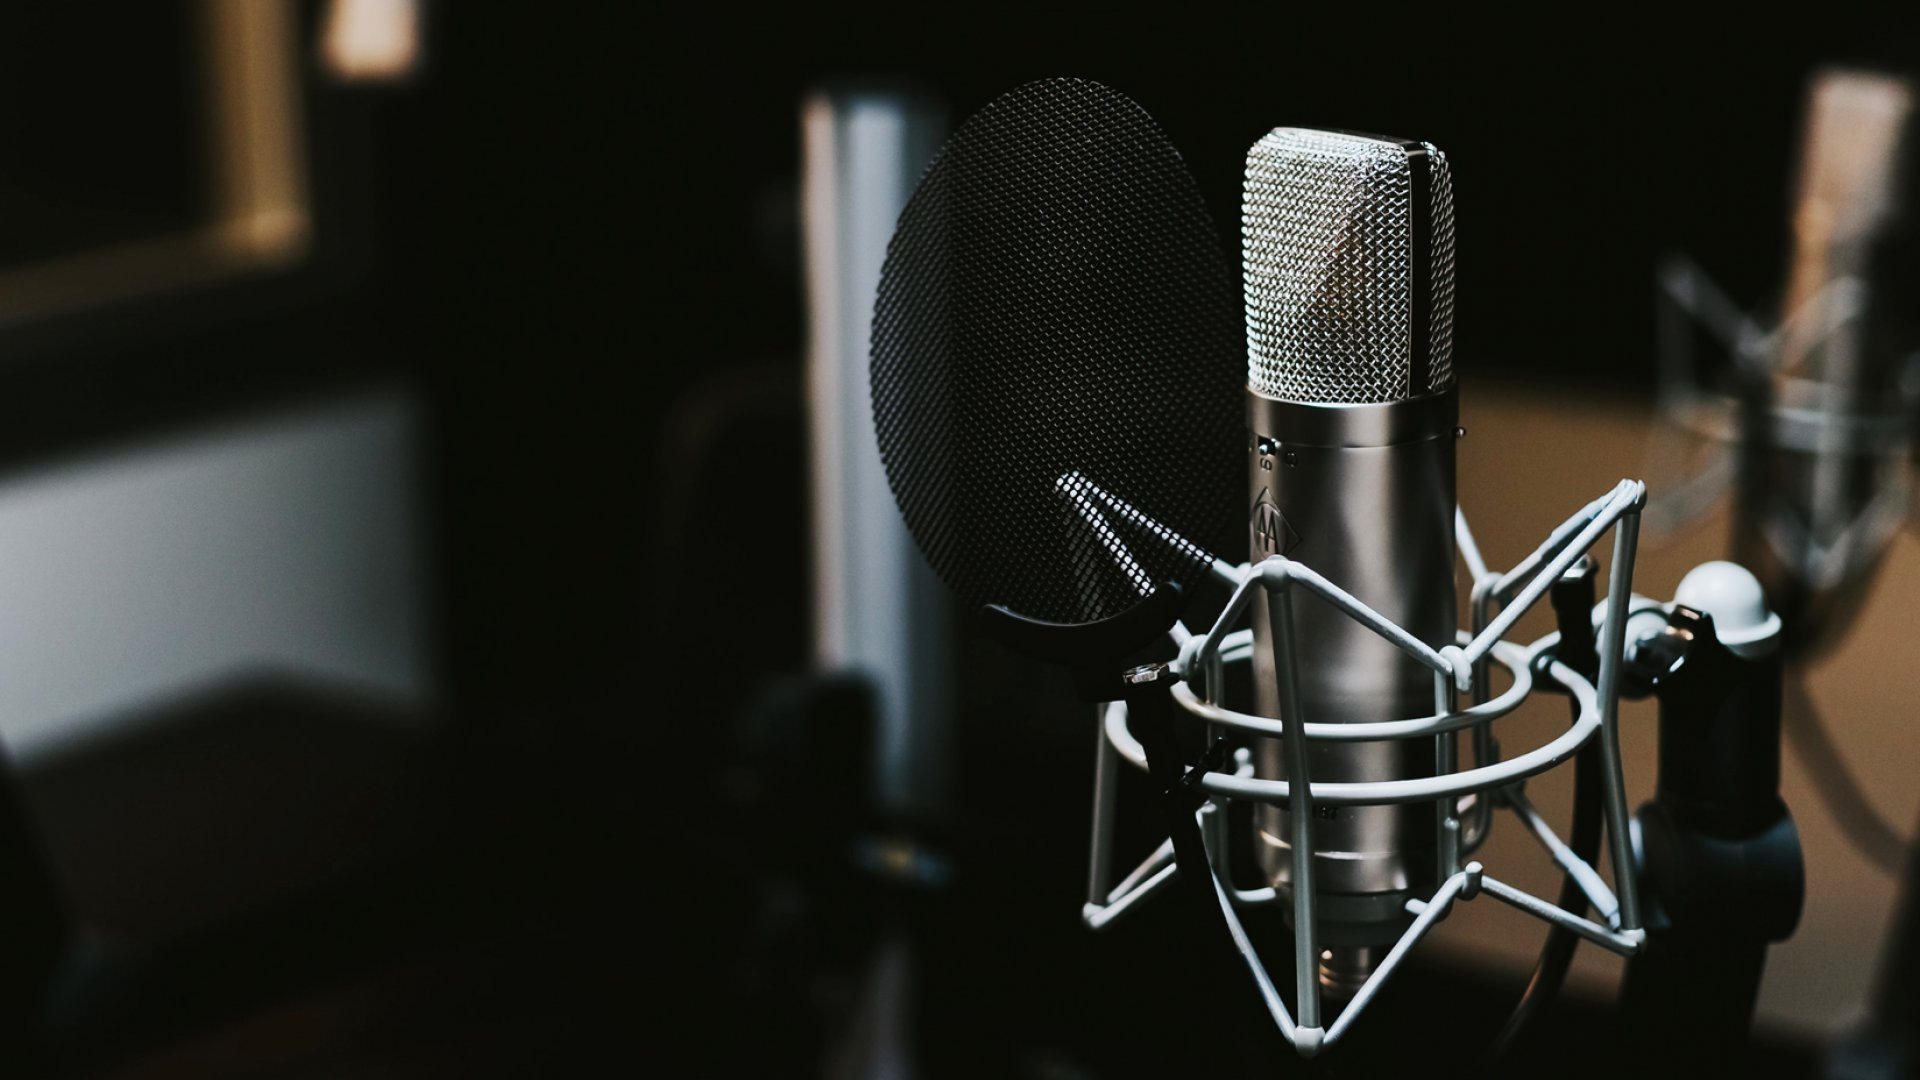 10 of the Best Business Podcasts to Help Your Company Thrive